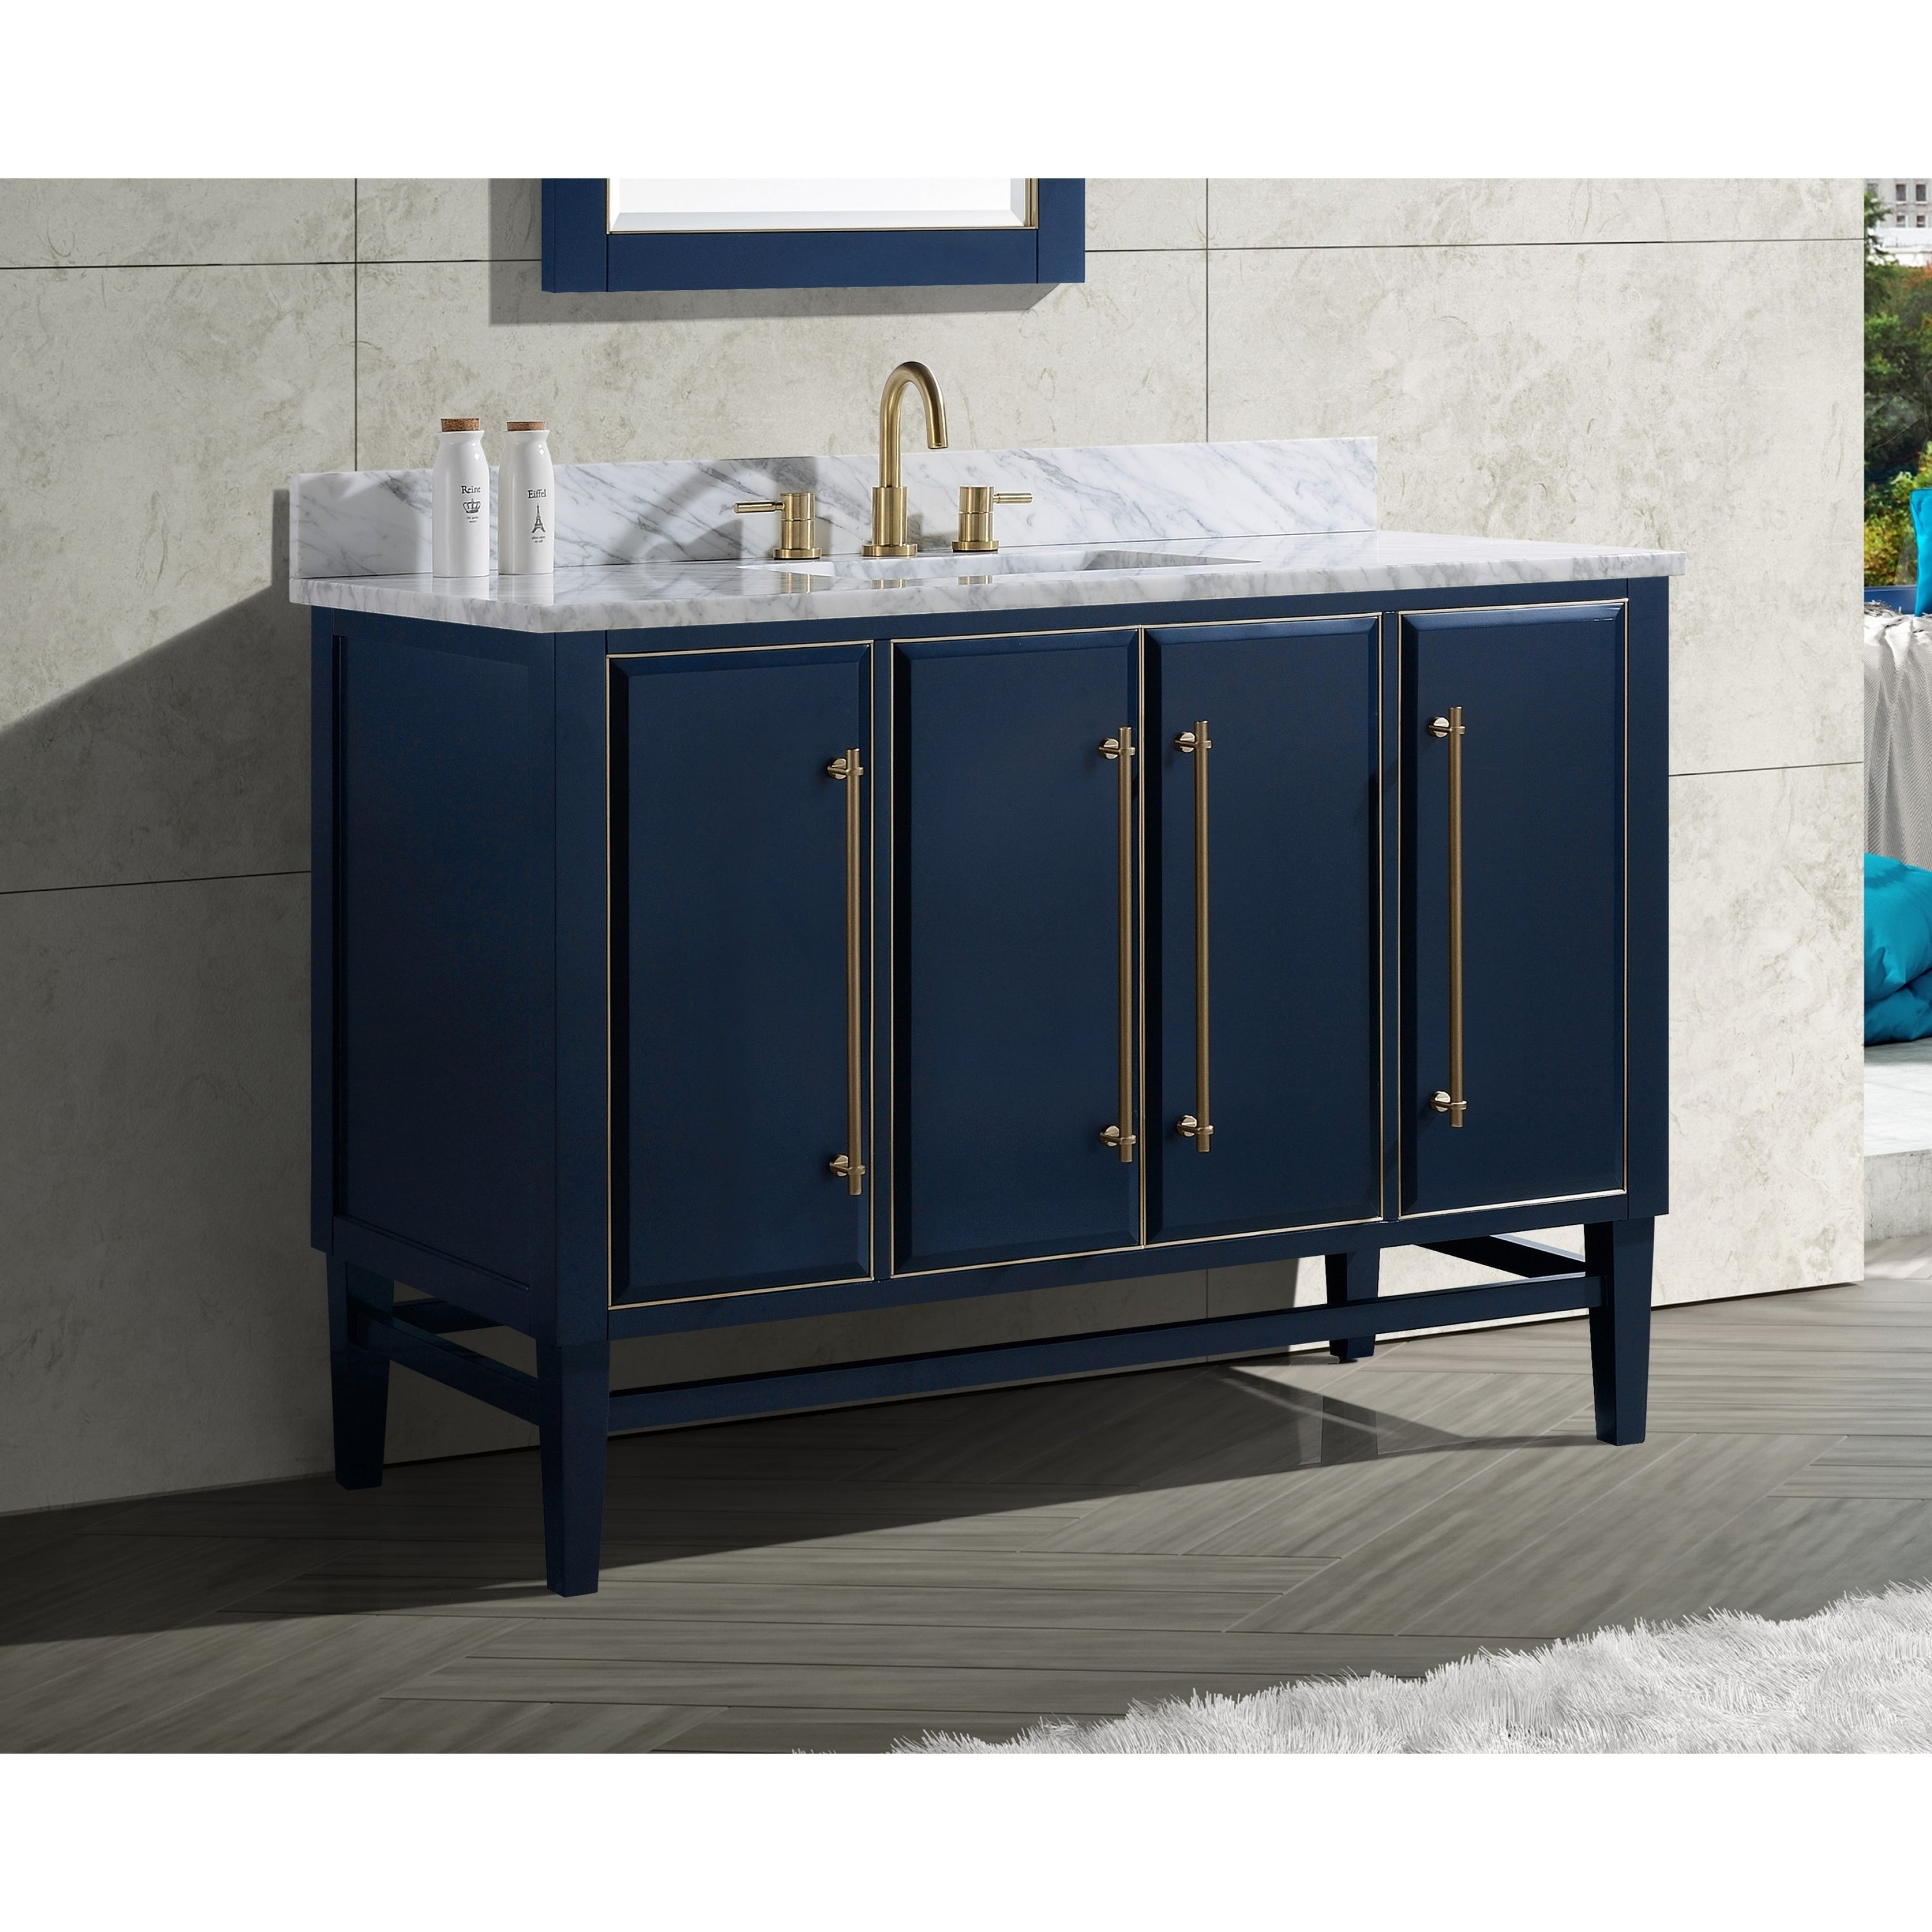 Shop For Avanity Mason 49 In Single Sink Bathroom Vanity Set In Navy Blue With Gold Trim Get Free Delivery On Everything At Overstock Your Online Furniture Outlet Store Get 5 In Rewards With Club O 28670954